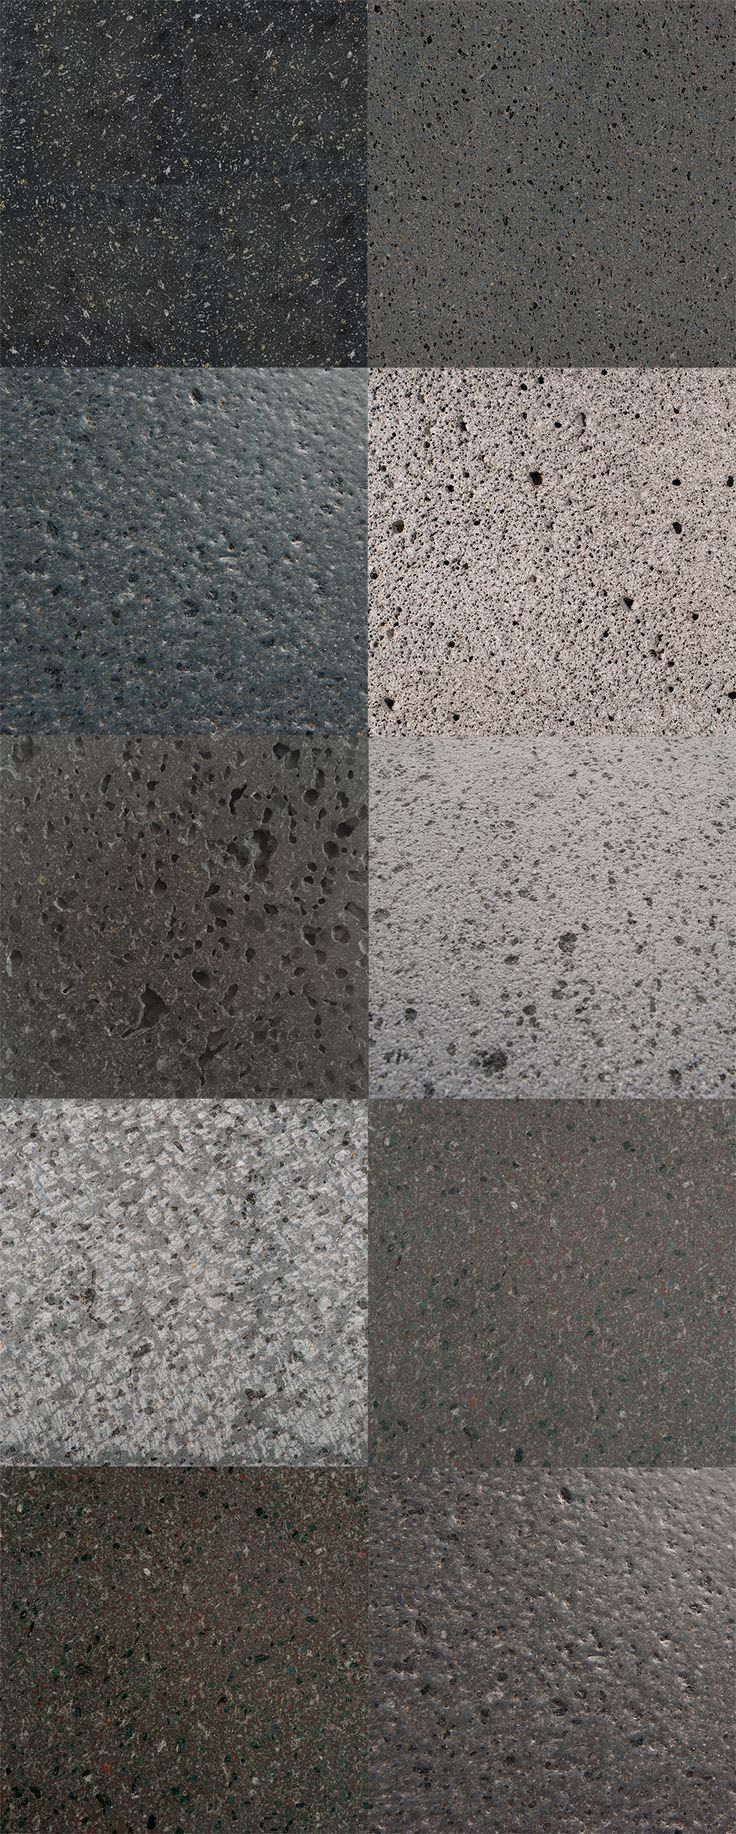 natural lava stone color palette. Lava stone is a natural stone, that is imperfect in its texture and color, which gives it a interesting organic perception. Furthermore, differente shades of gray and brown color, and different tactile characters you could reach through finishes can be used and put together giving visually interesting patterns and design.